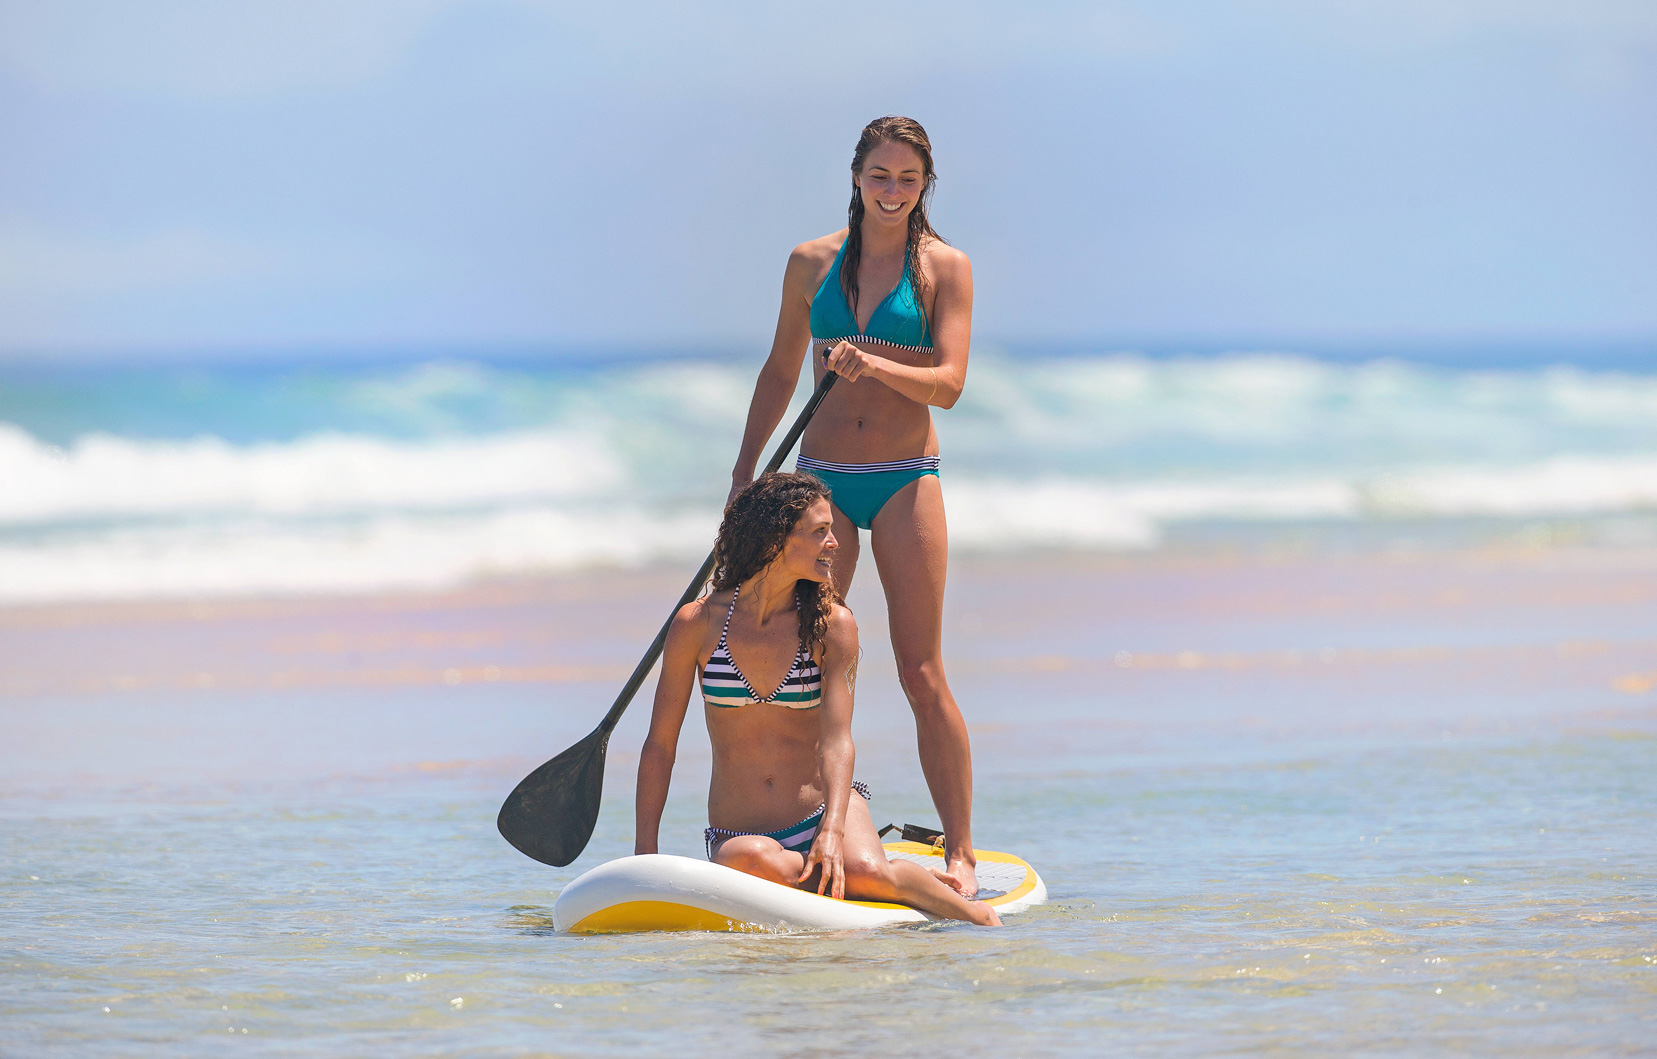 tablas de surf stand of paddle